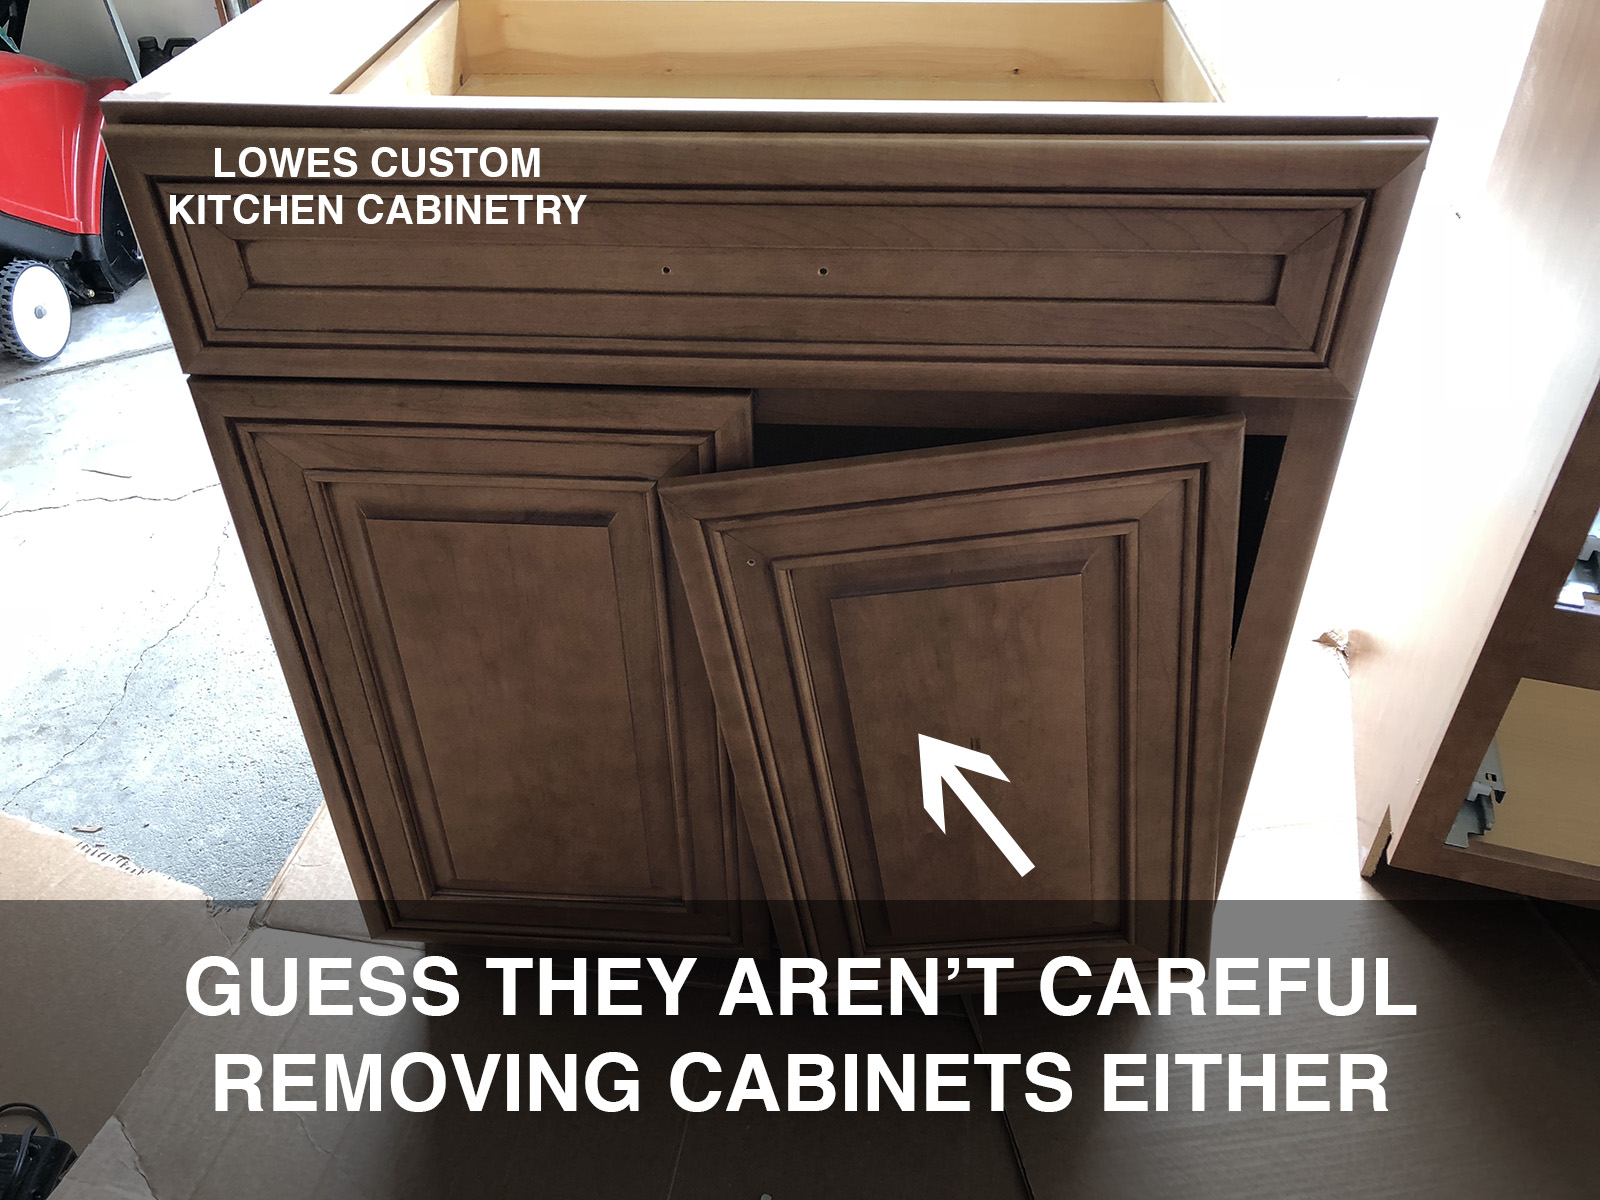 Kitchen Nightmares Long Island Top 10 reviews of lowes kitchen cabinets lowes kitchen cabinets consumer reviews workwithnaturefo